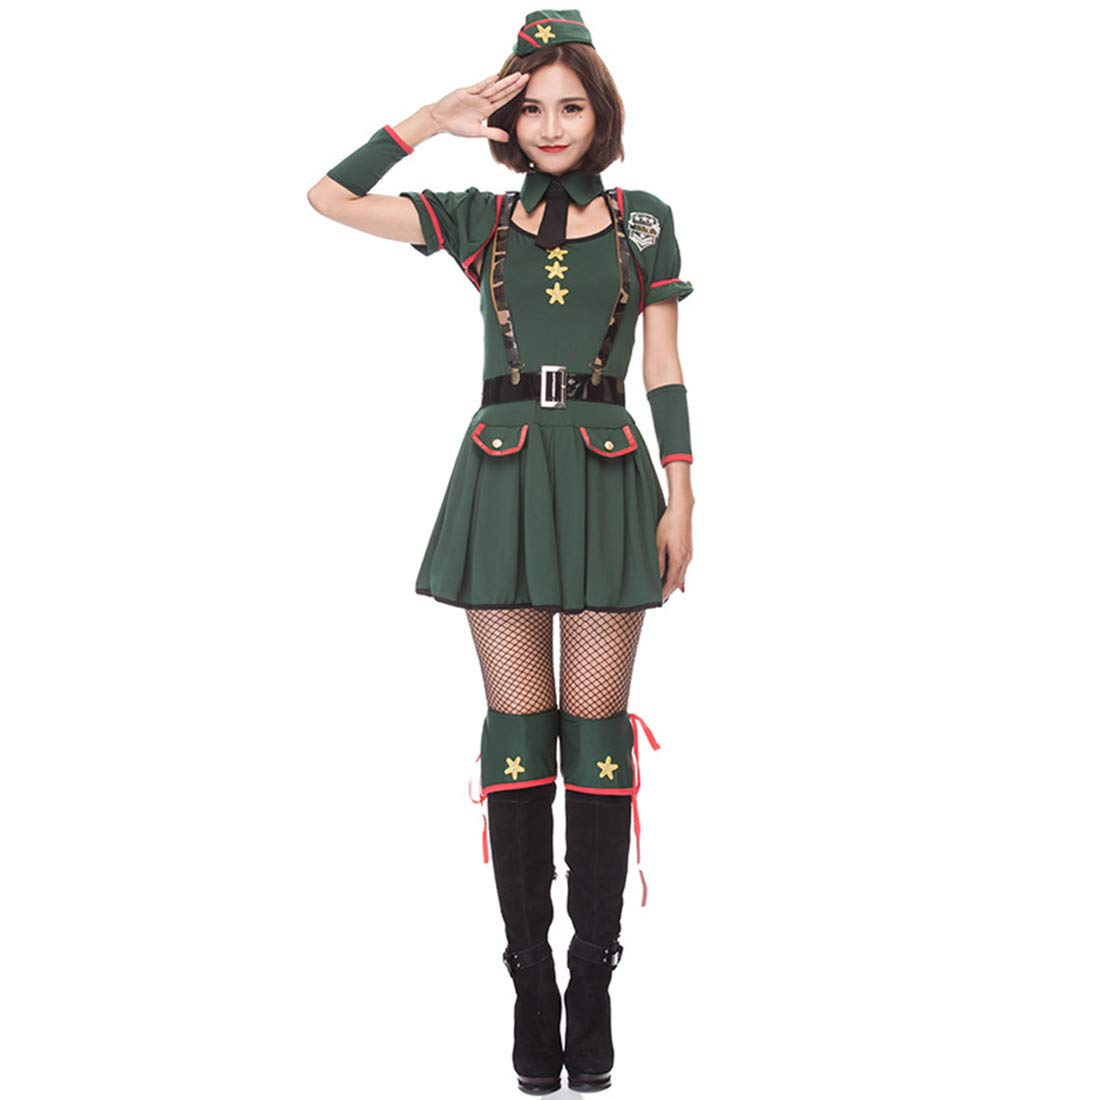 Amazon.com: MV Army Green Agent American Police Officer ...